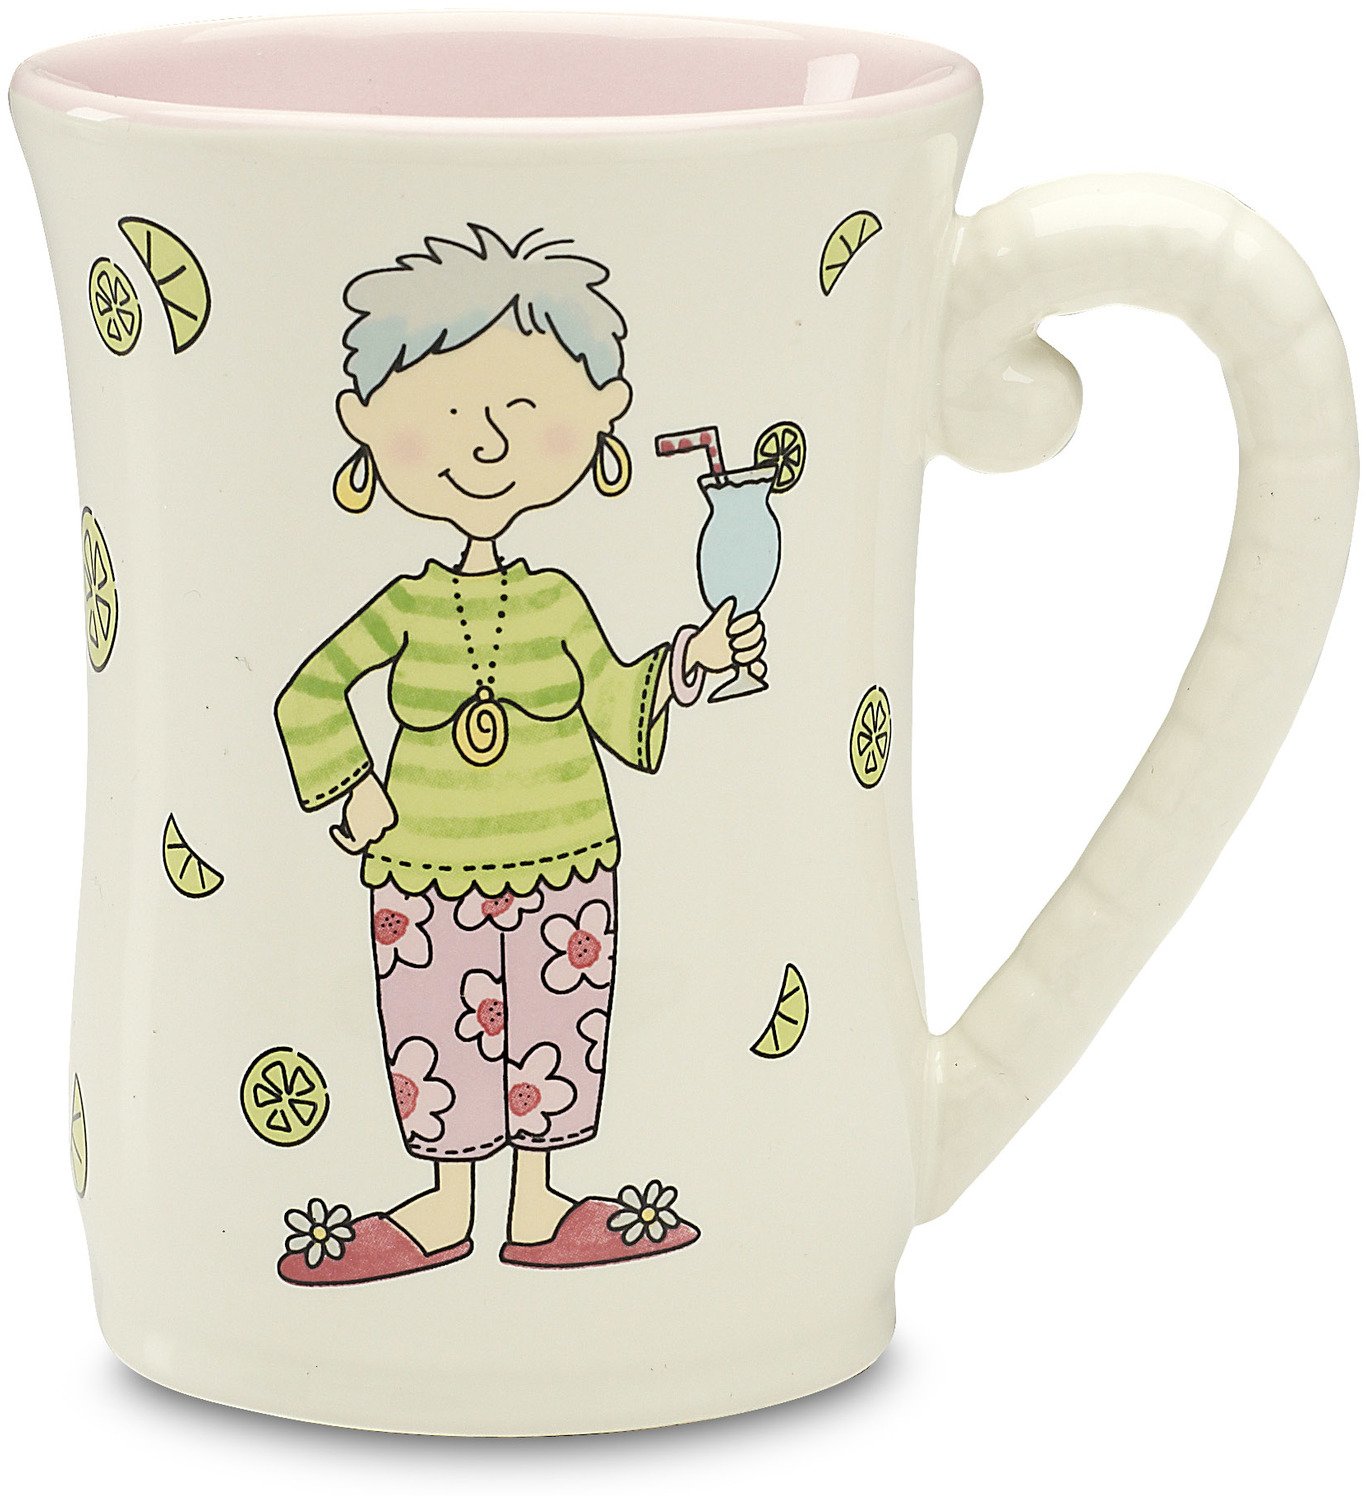 Well Seasoned The Retirement Plan Pink Ceramic Coffee Mug - Grandma